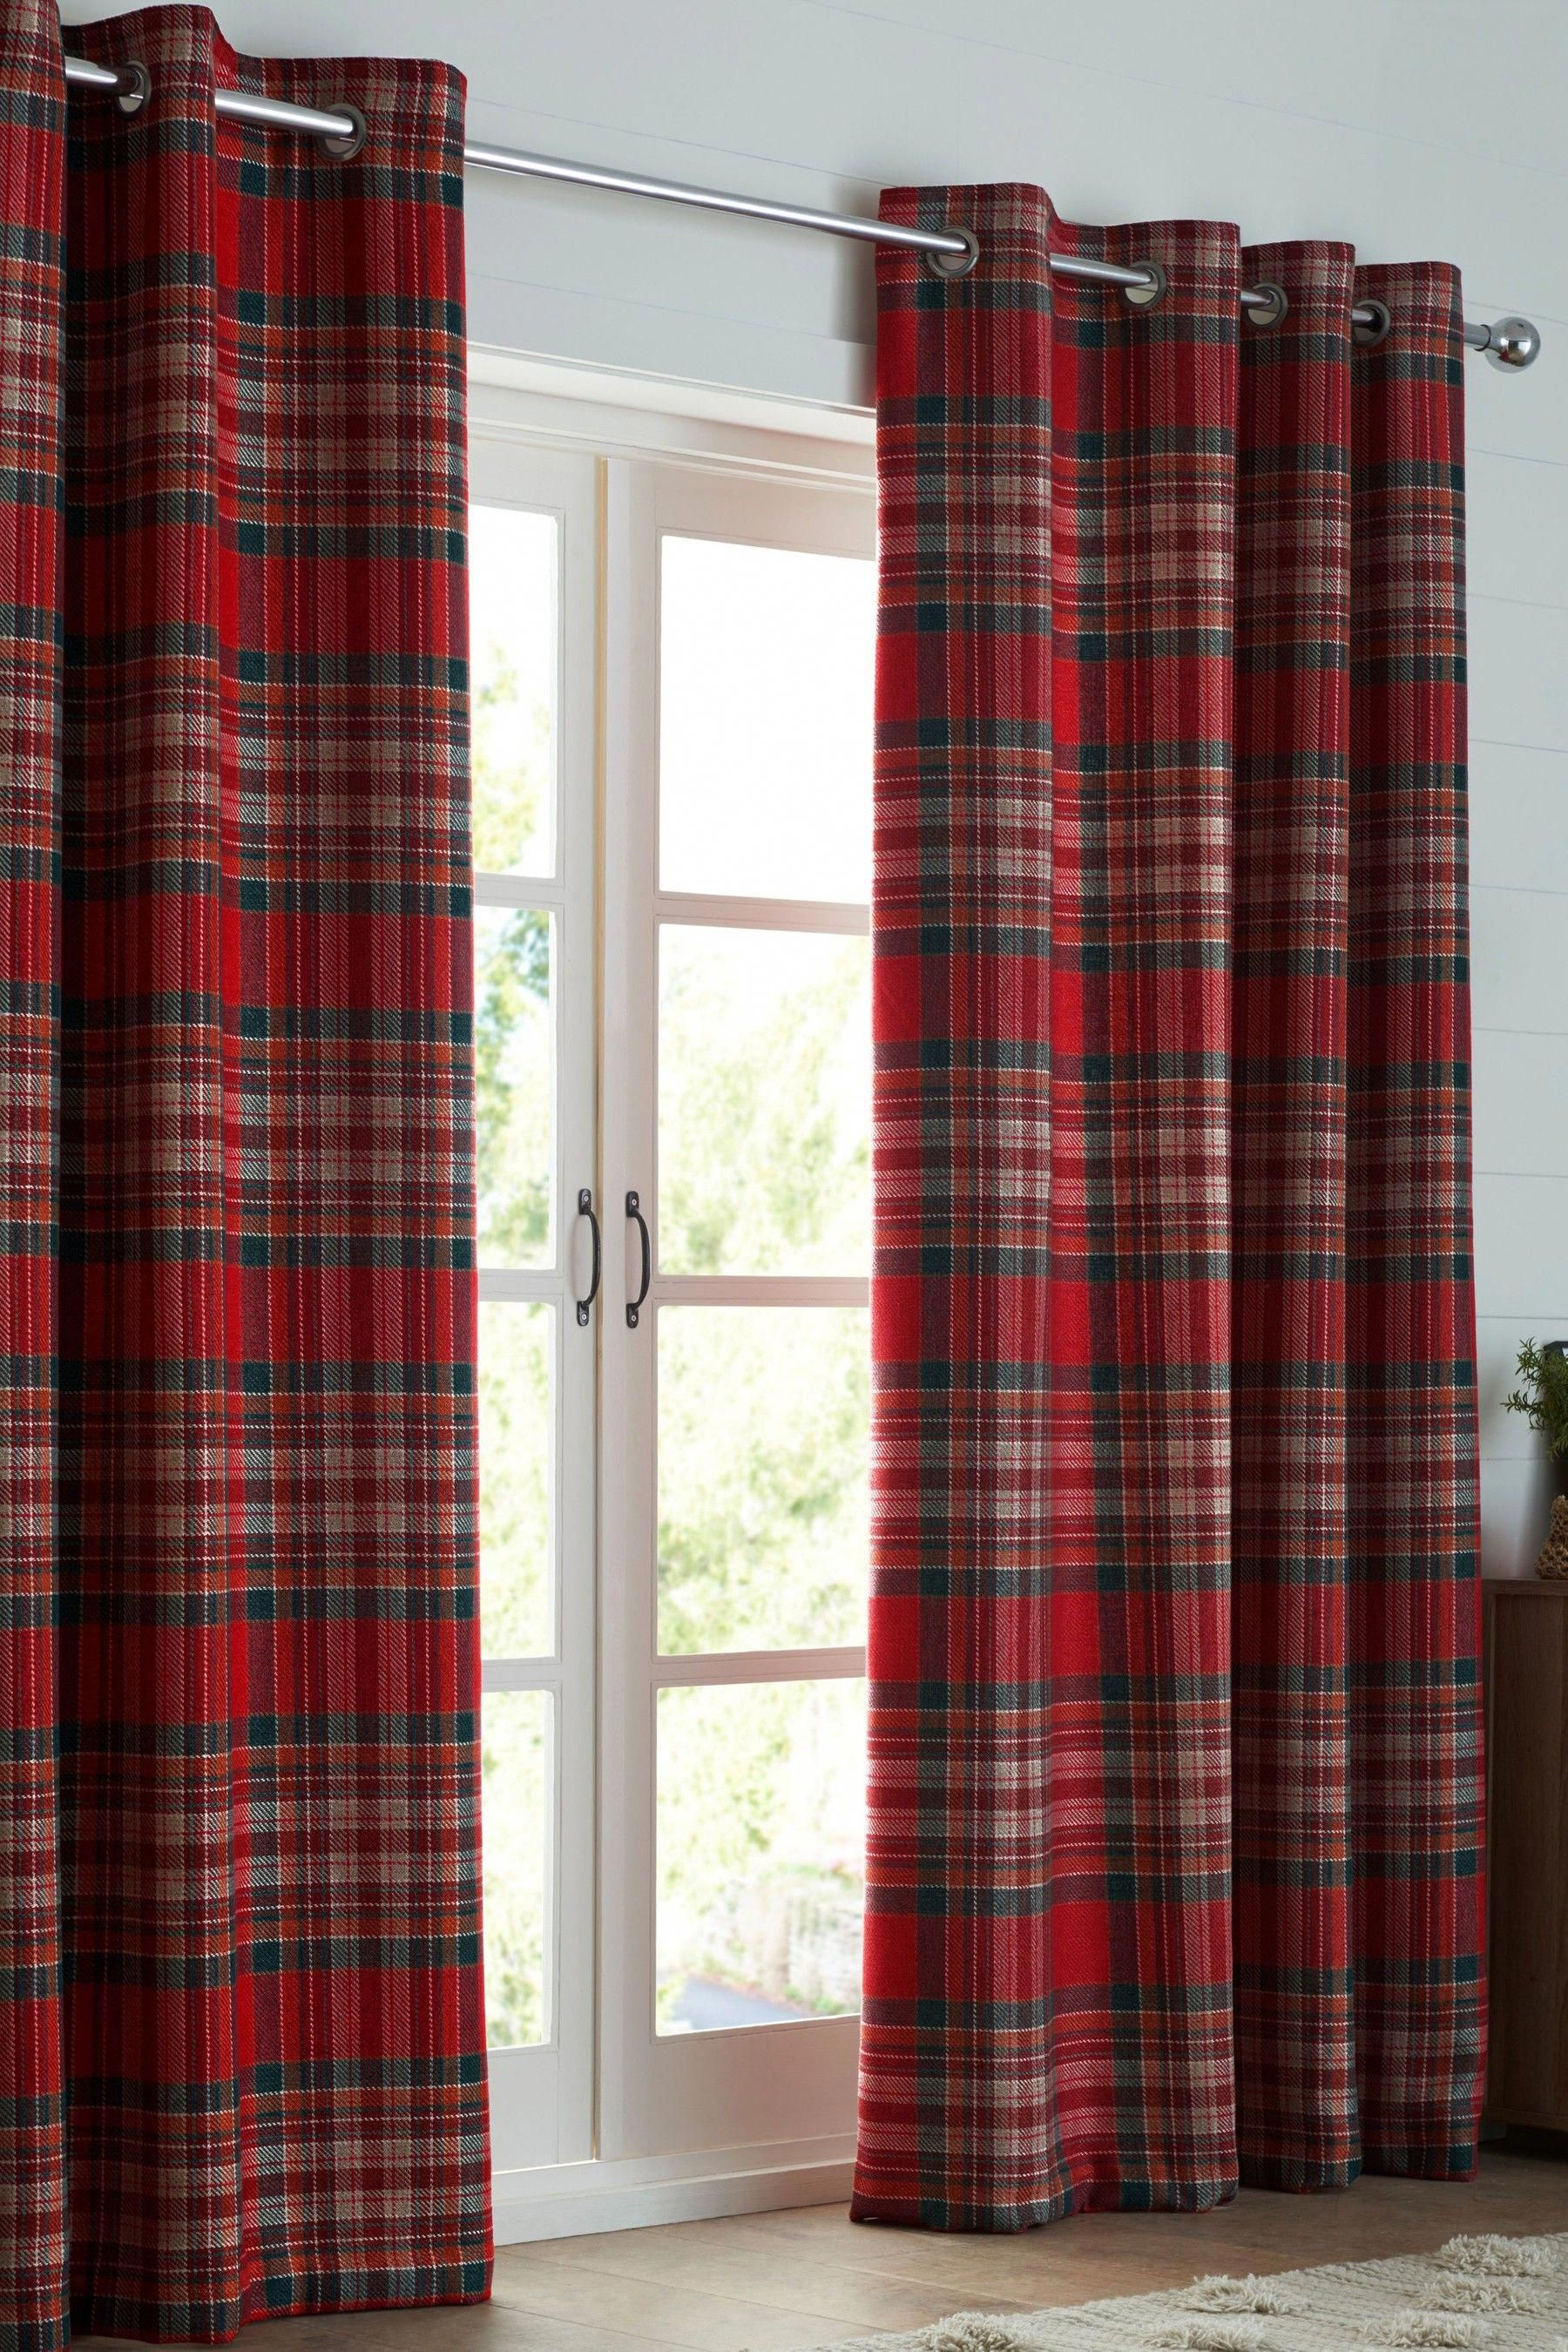 Go Look At Our Niche Site For Way More About This Fabulous Photo Curtainsanddrapes Curtains Custom Drapes Cabin Curtains